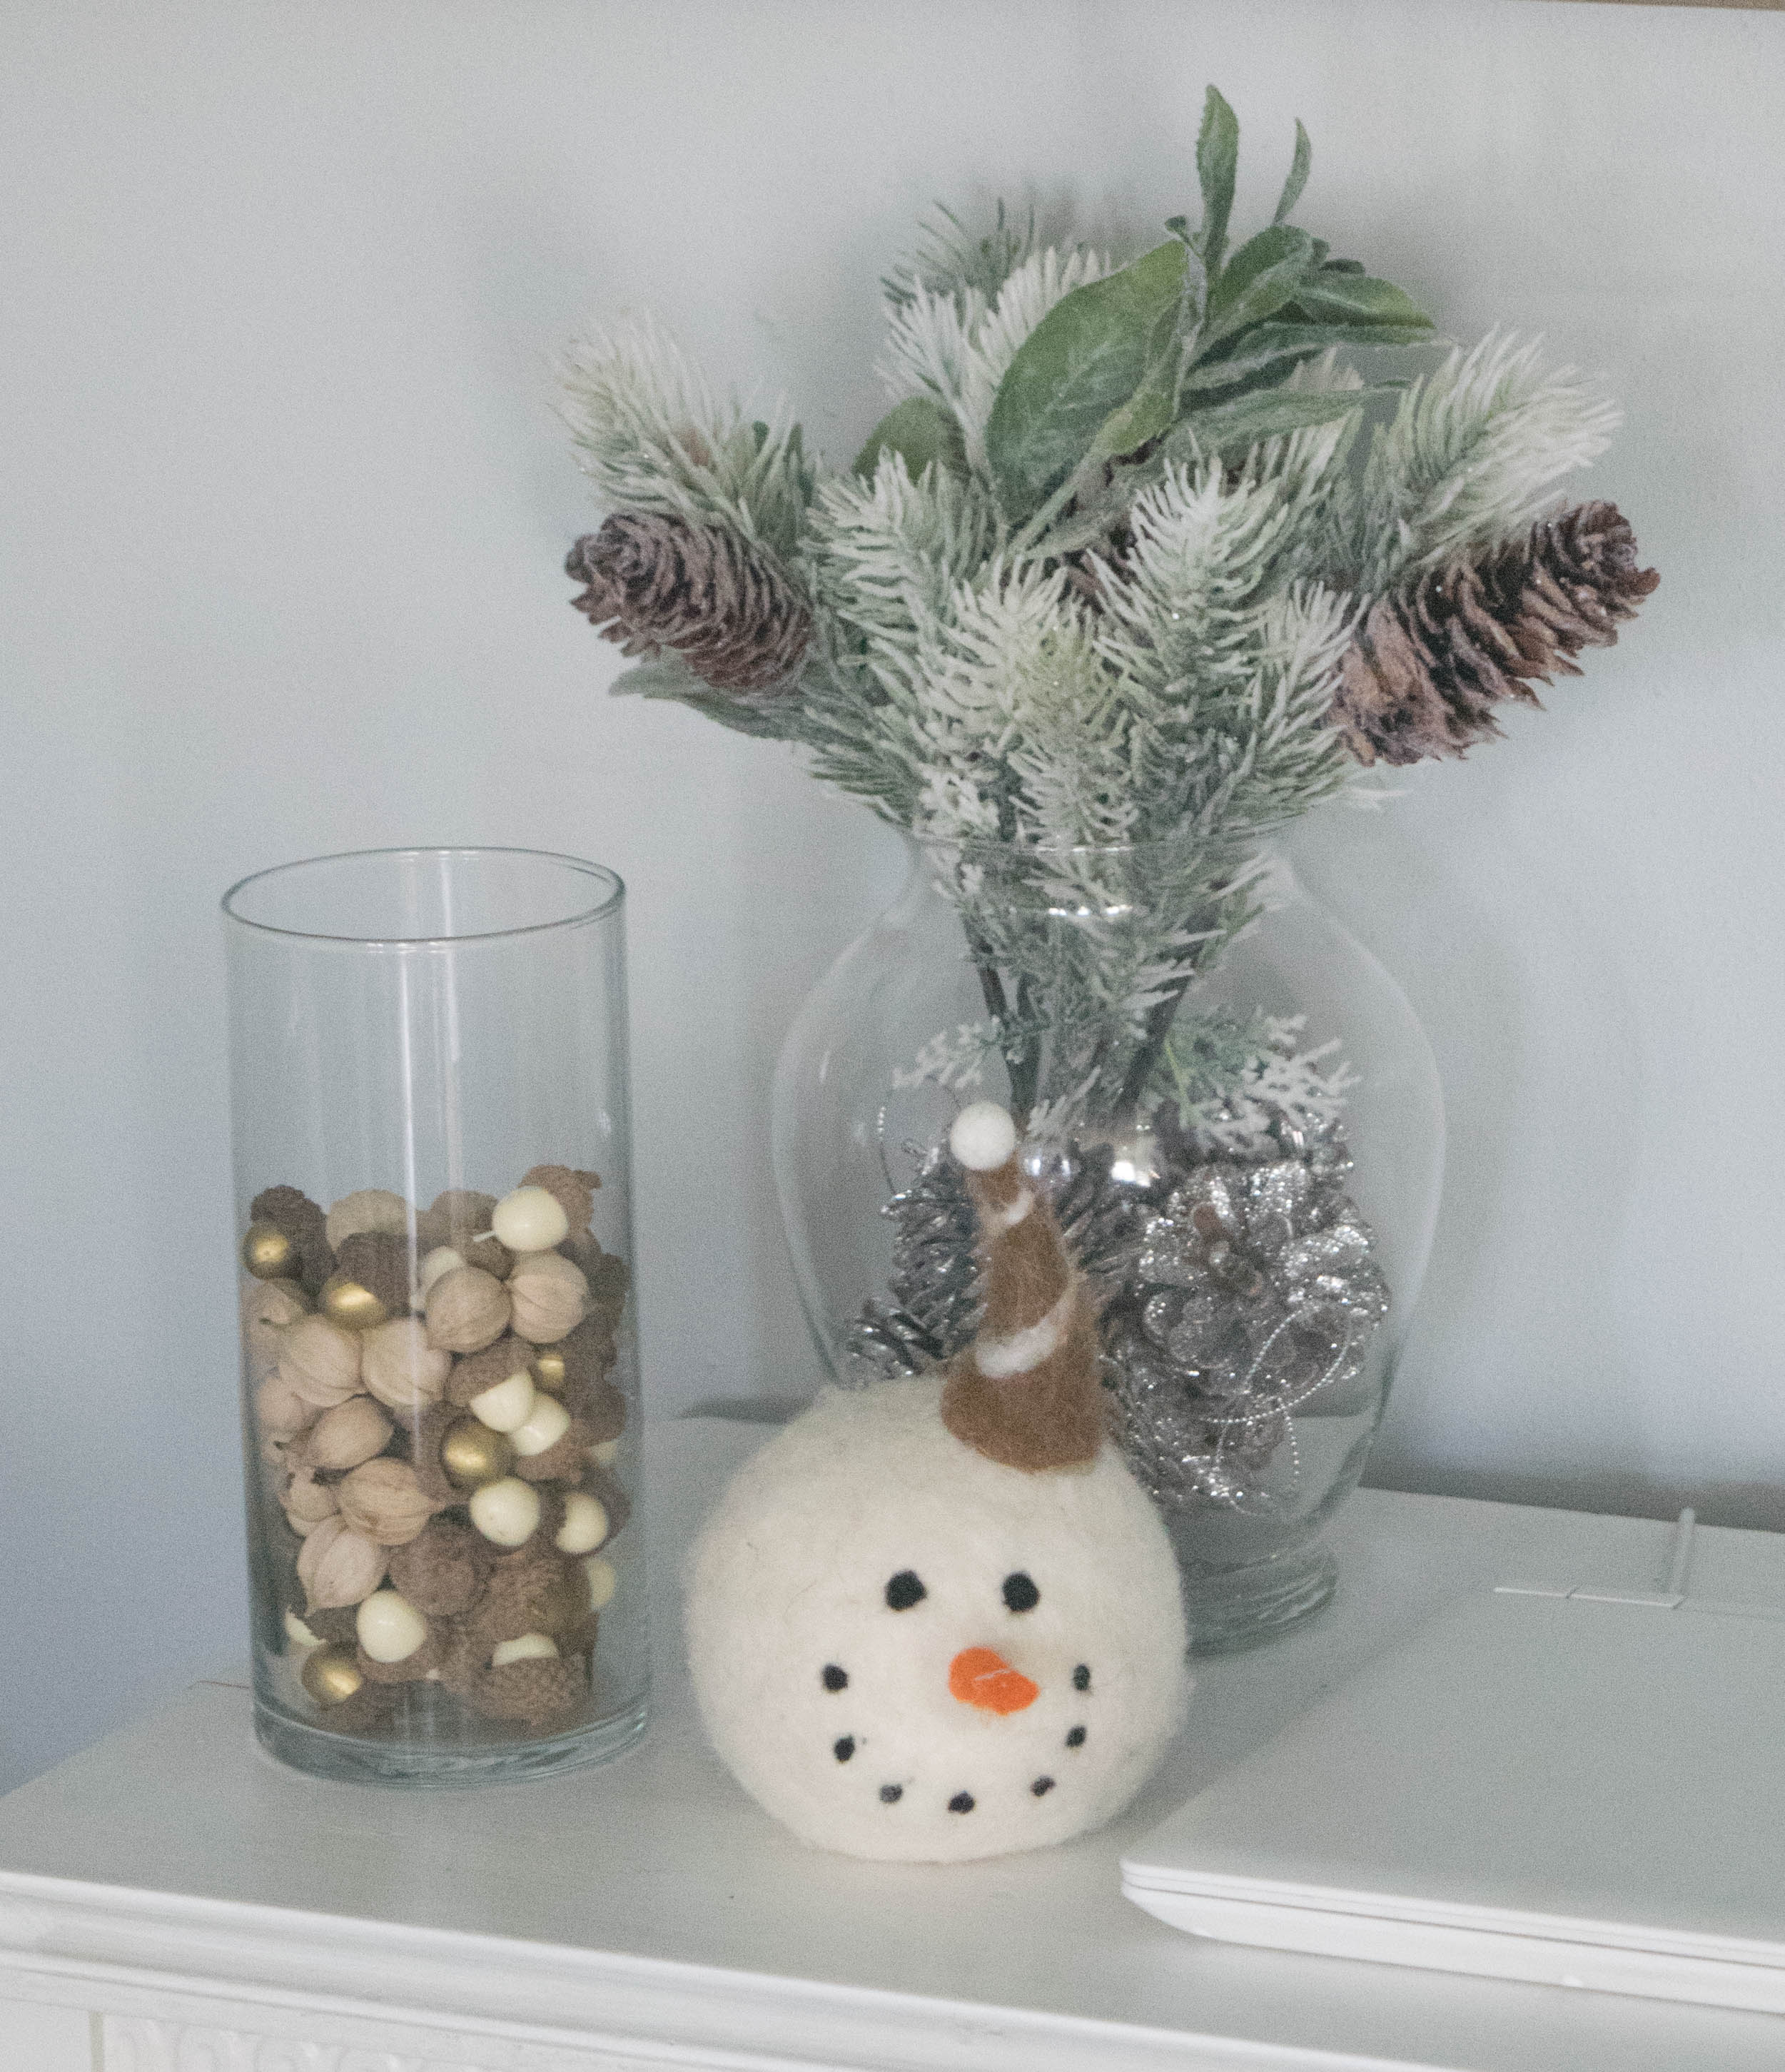 Simple Christmas Decor 1 Of 1 Our House Now A Home